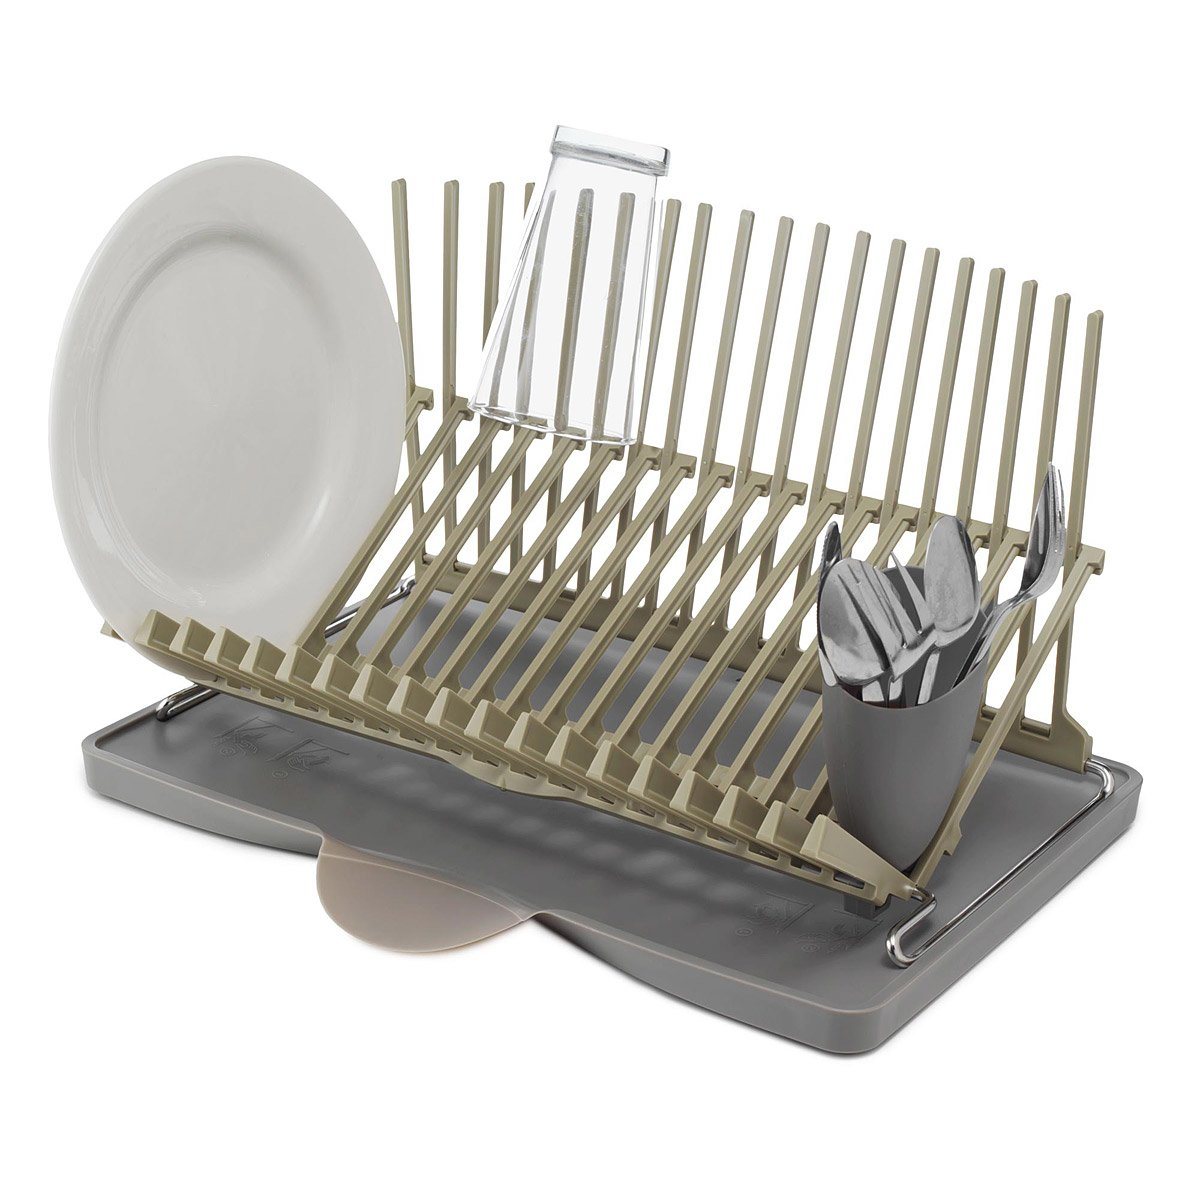 Kitchen Dish Rack High Dry Dish Rack Drying Racks Dishes Kitchen Sink Hand